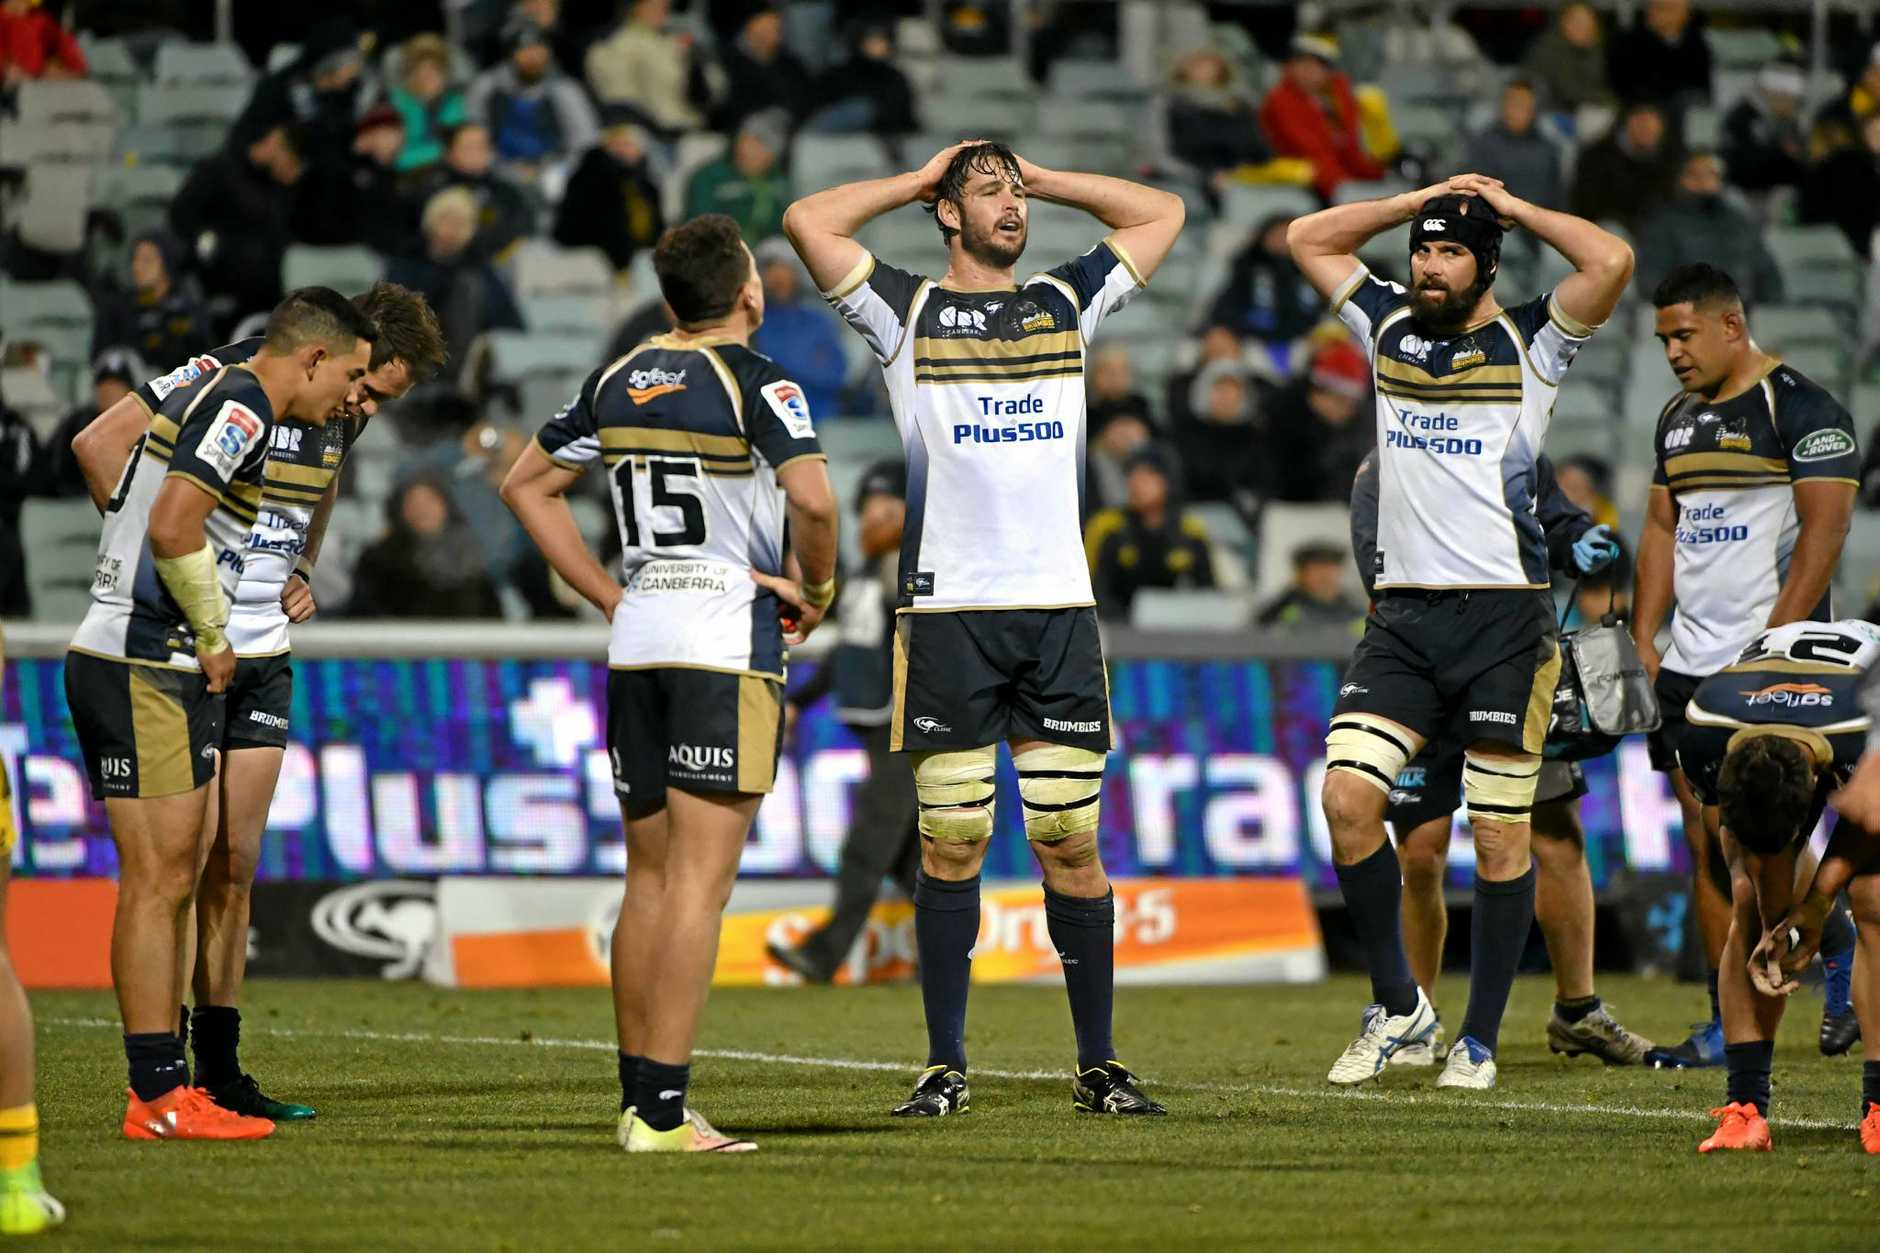 Sam Carter (centre) and Scott Fardy (right) of the Brumbies looks on after the Hurricanes score a try during the quarterfinal Super Rugby match between the Brumbies and the Wellington Hurricanes at GIO Stadium in Canberra, Friday, July 21, 2017. (AAP Image/Mick Tsikas) NO ARCHIVING, EDITORIAL USE ONLY